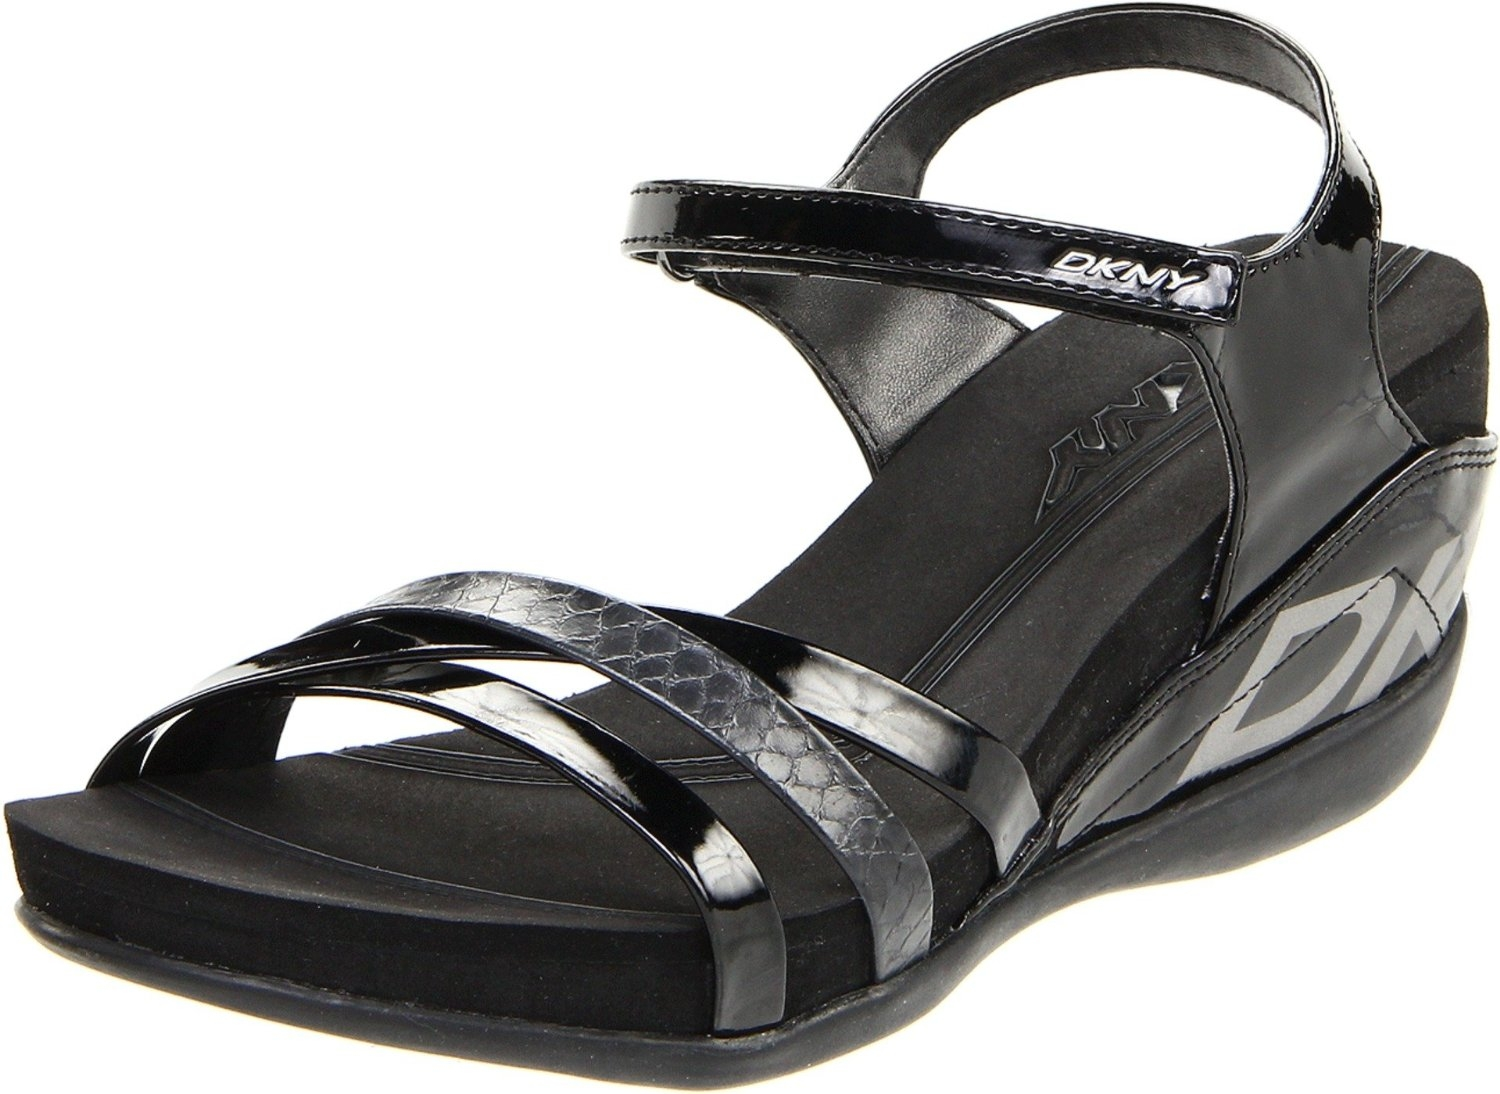 0272a5d147d1 Shop women s shoes  DKNY Women s Hava Sandal